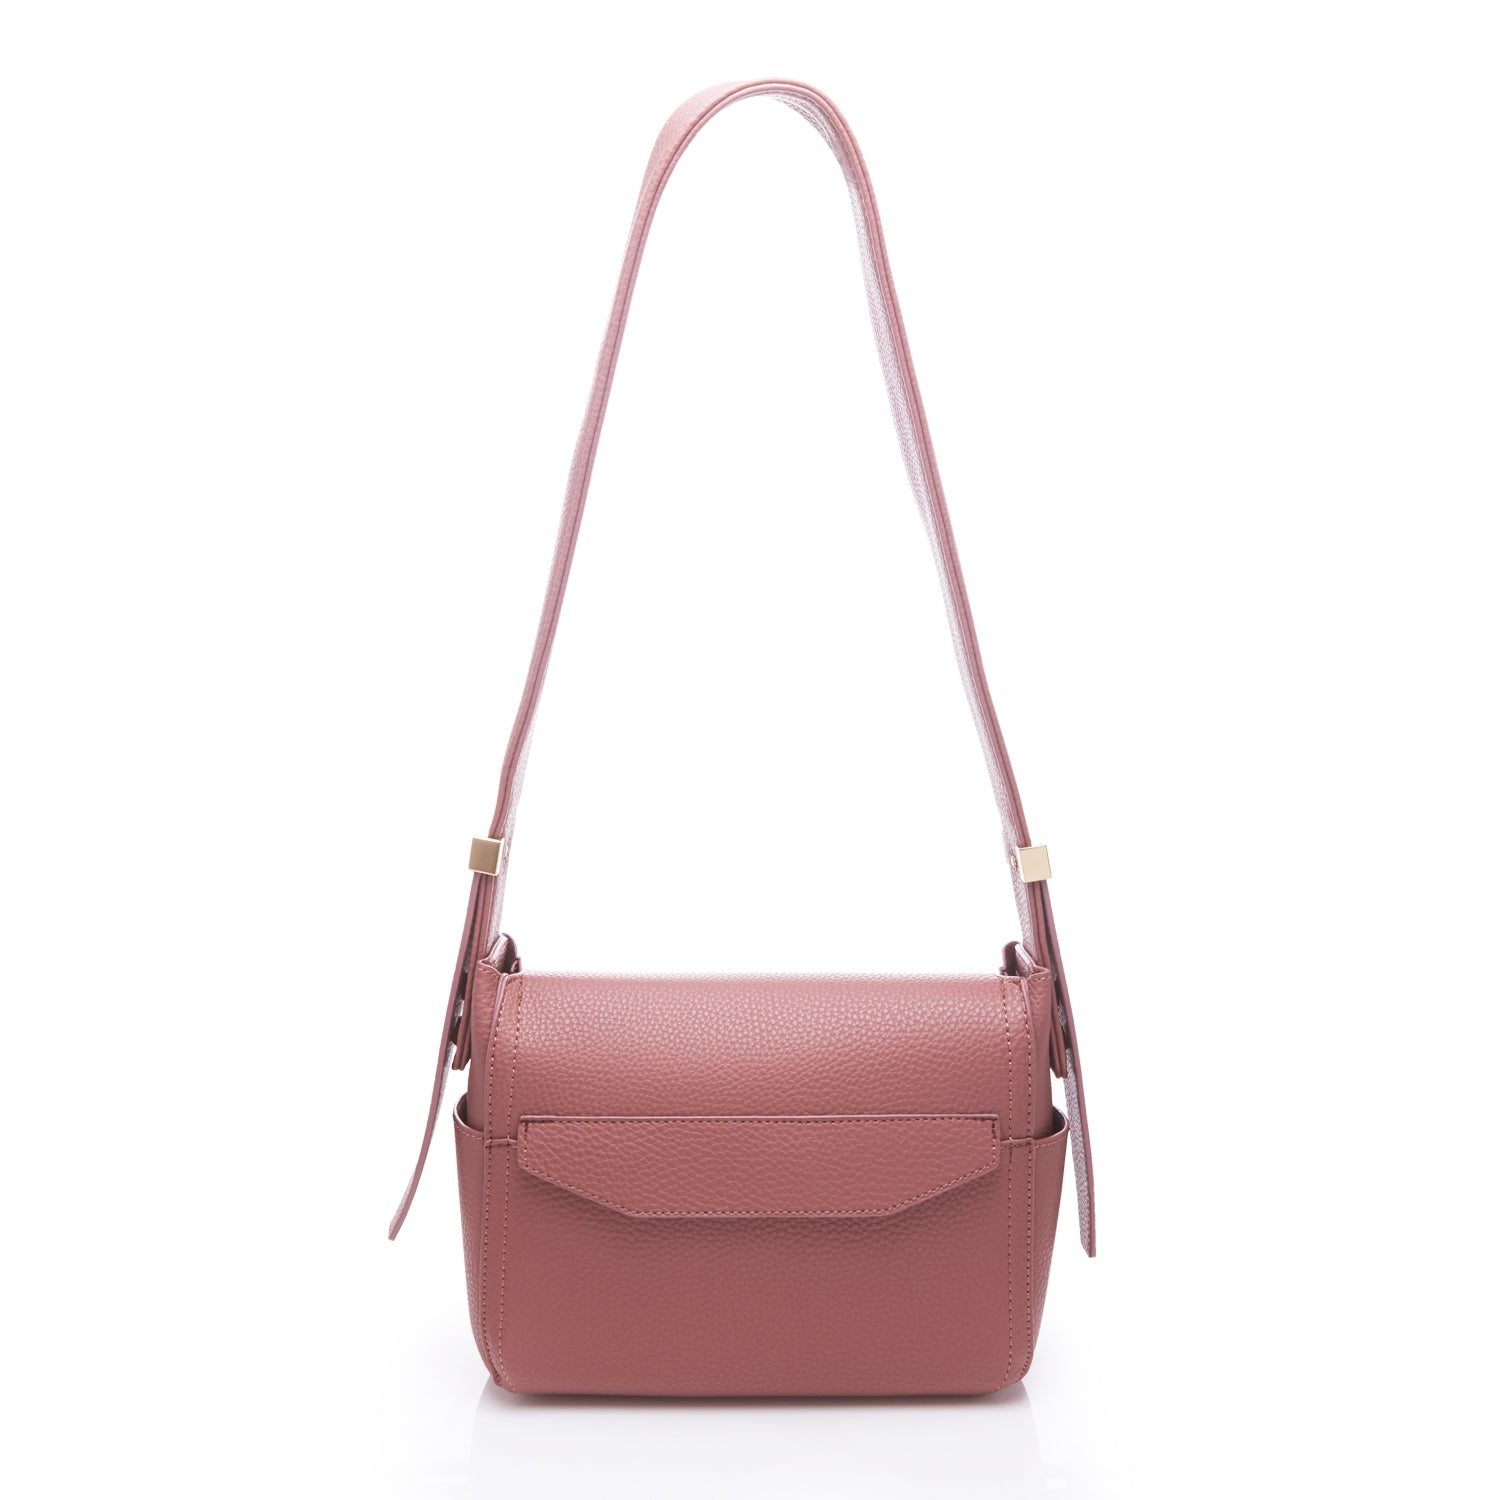 RIBAG MINI - BLUSH